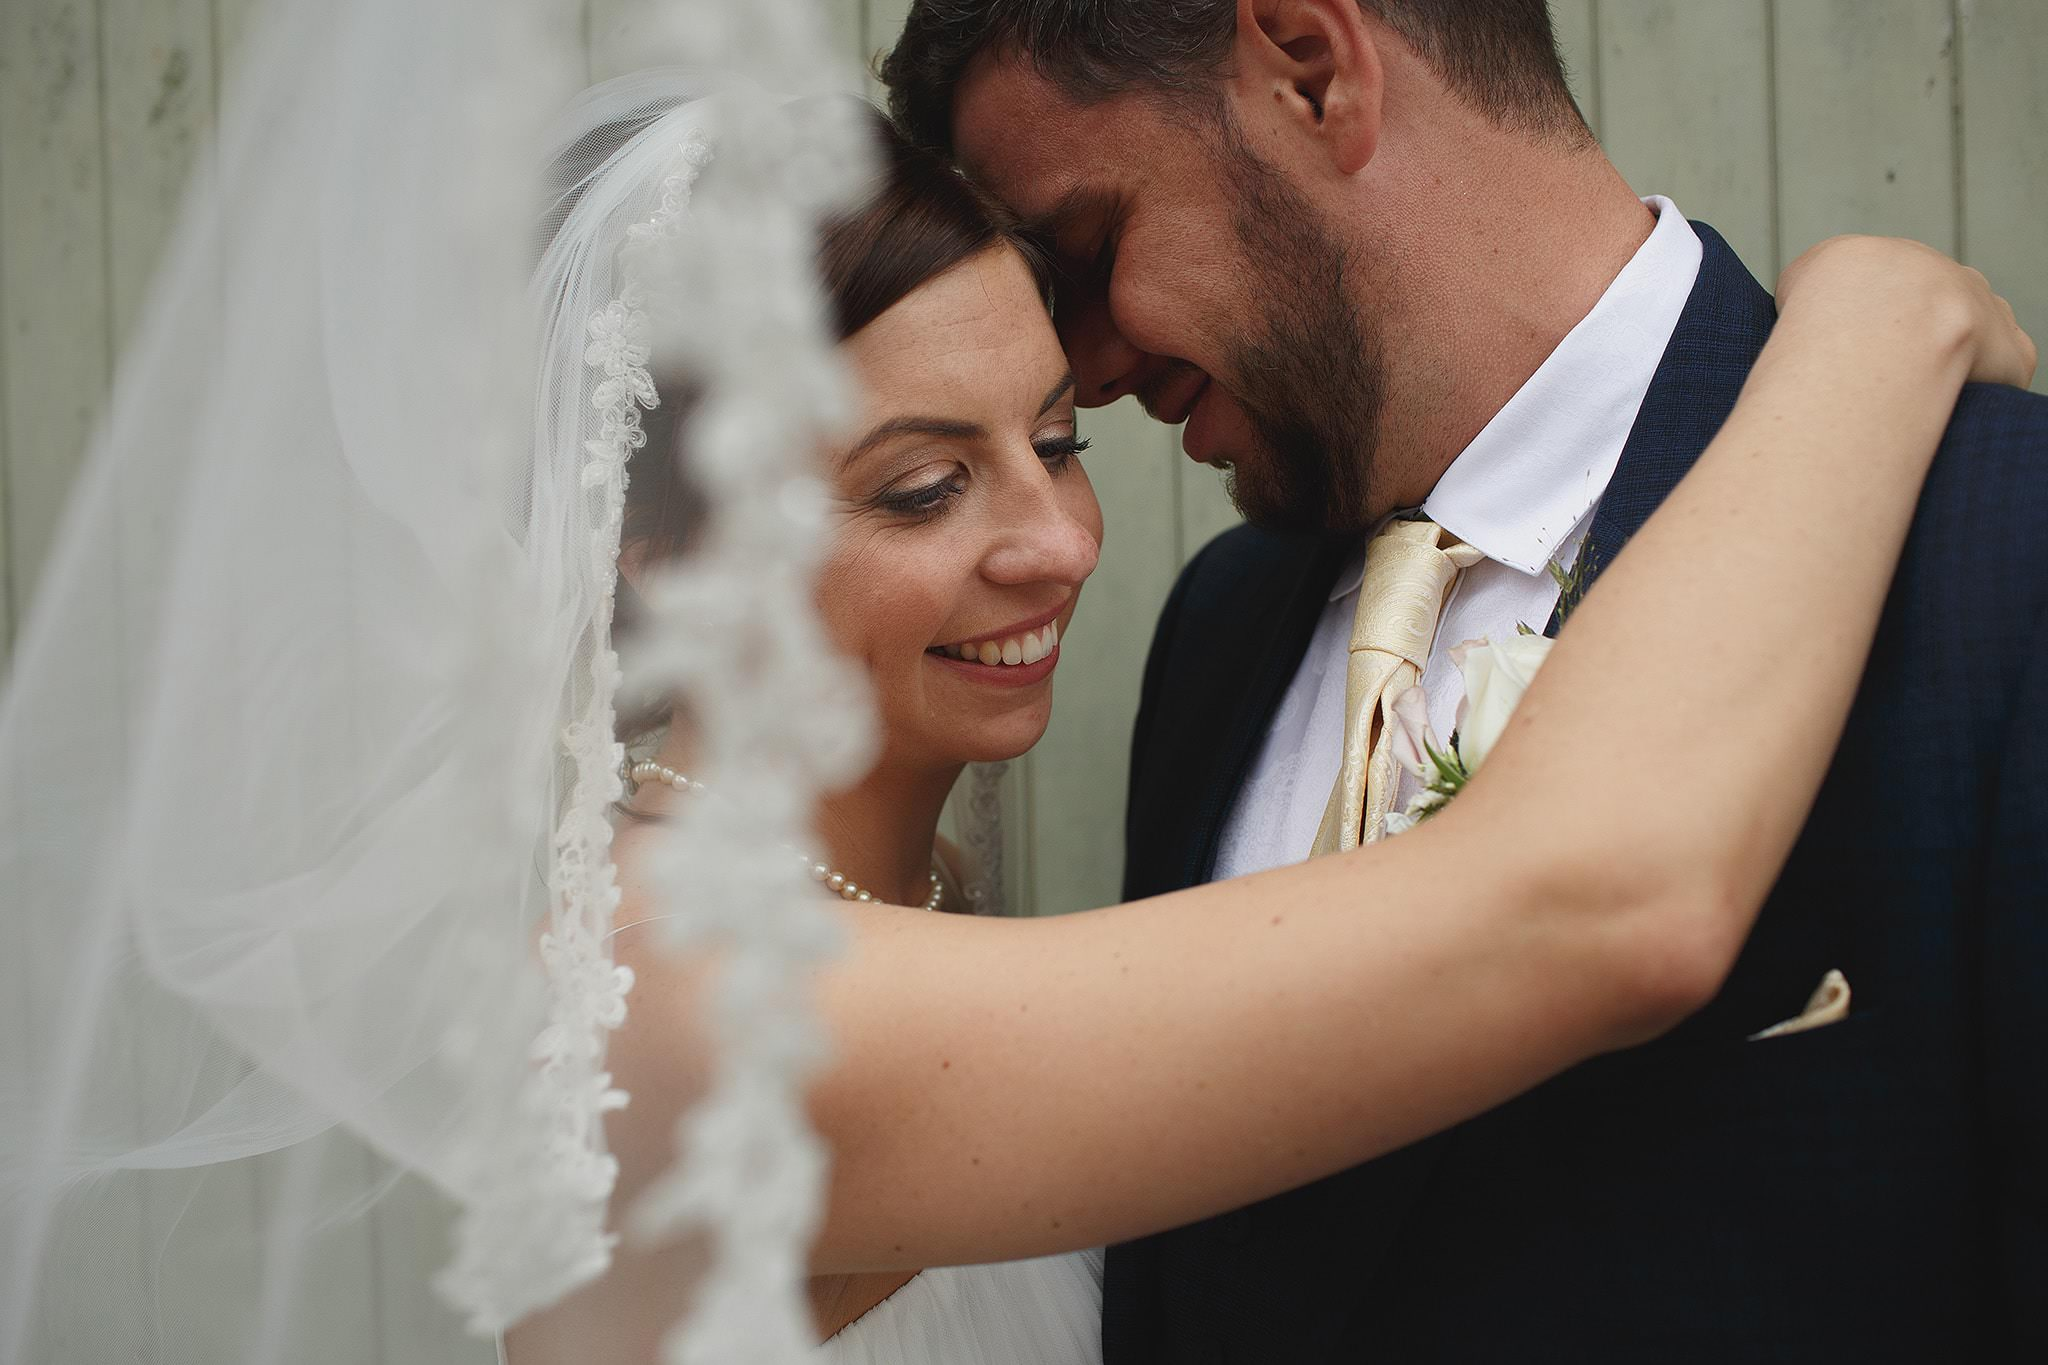 Beautiful portrait of bride and groom at Browshome Hall wedding.